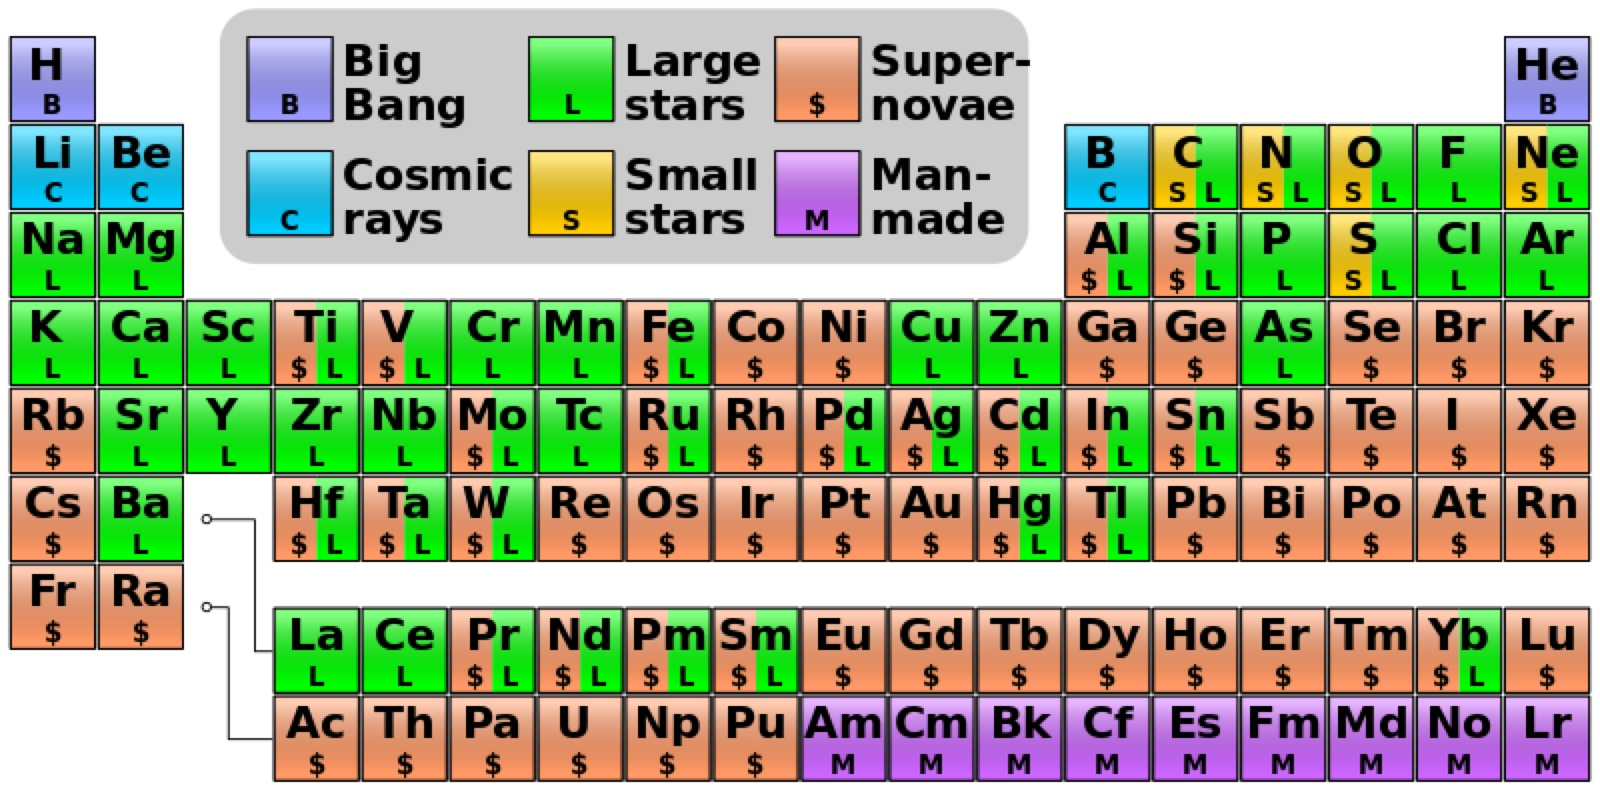 Stardust Toward A New Periodic Table Of Elements